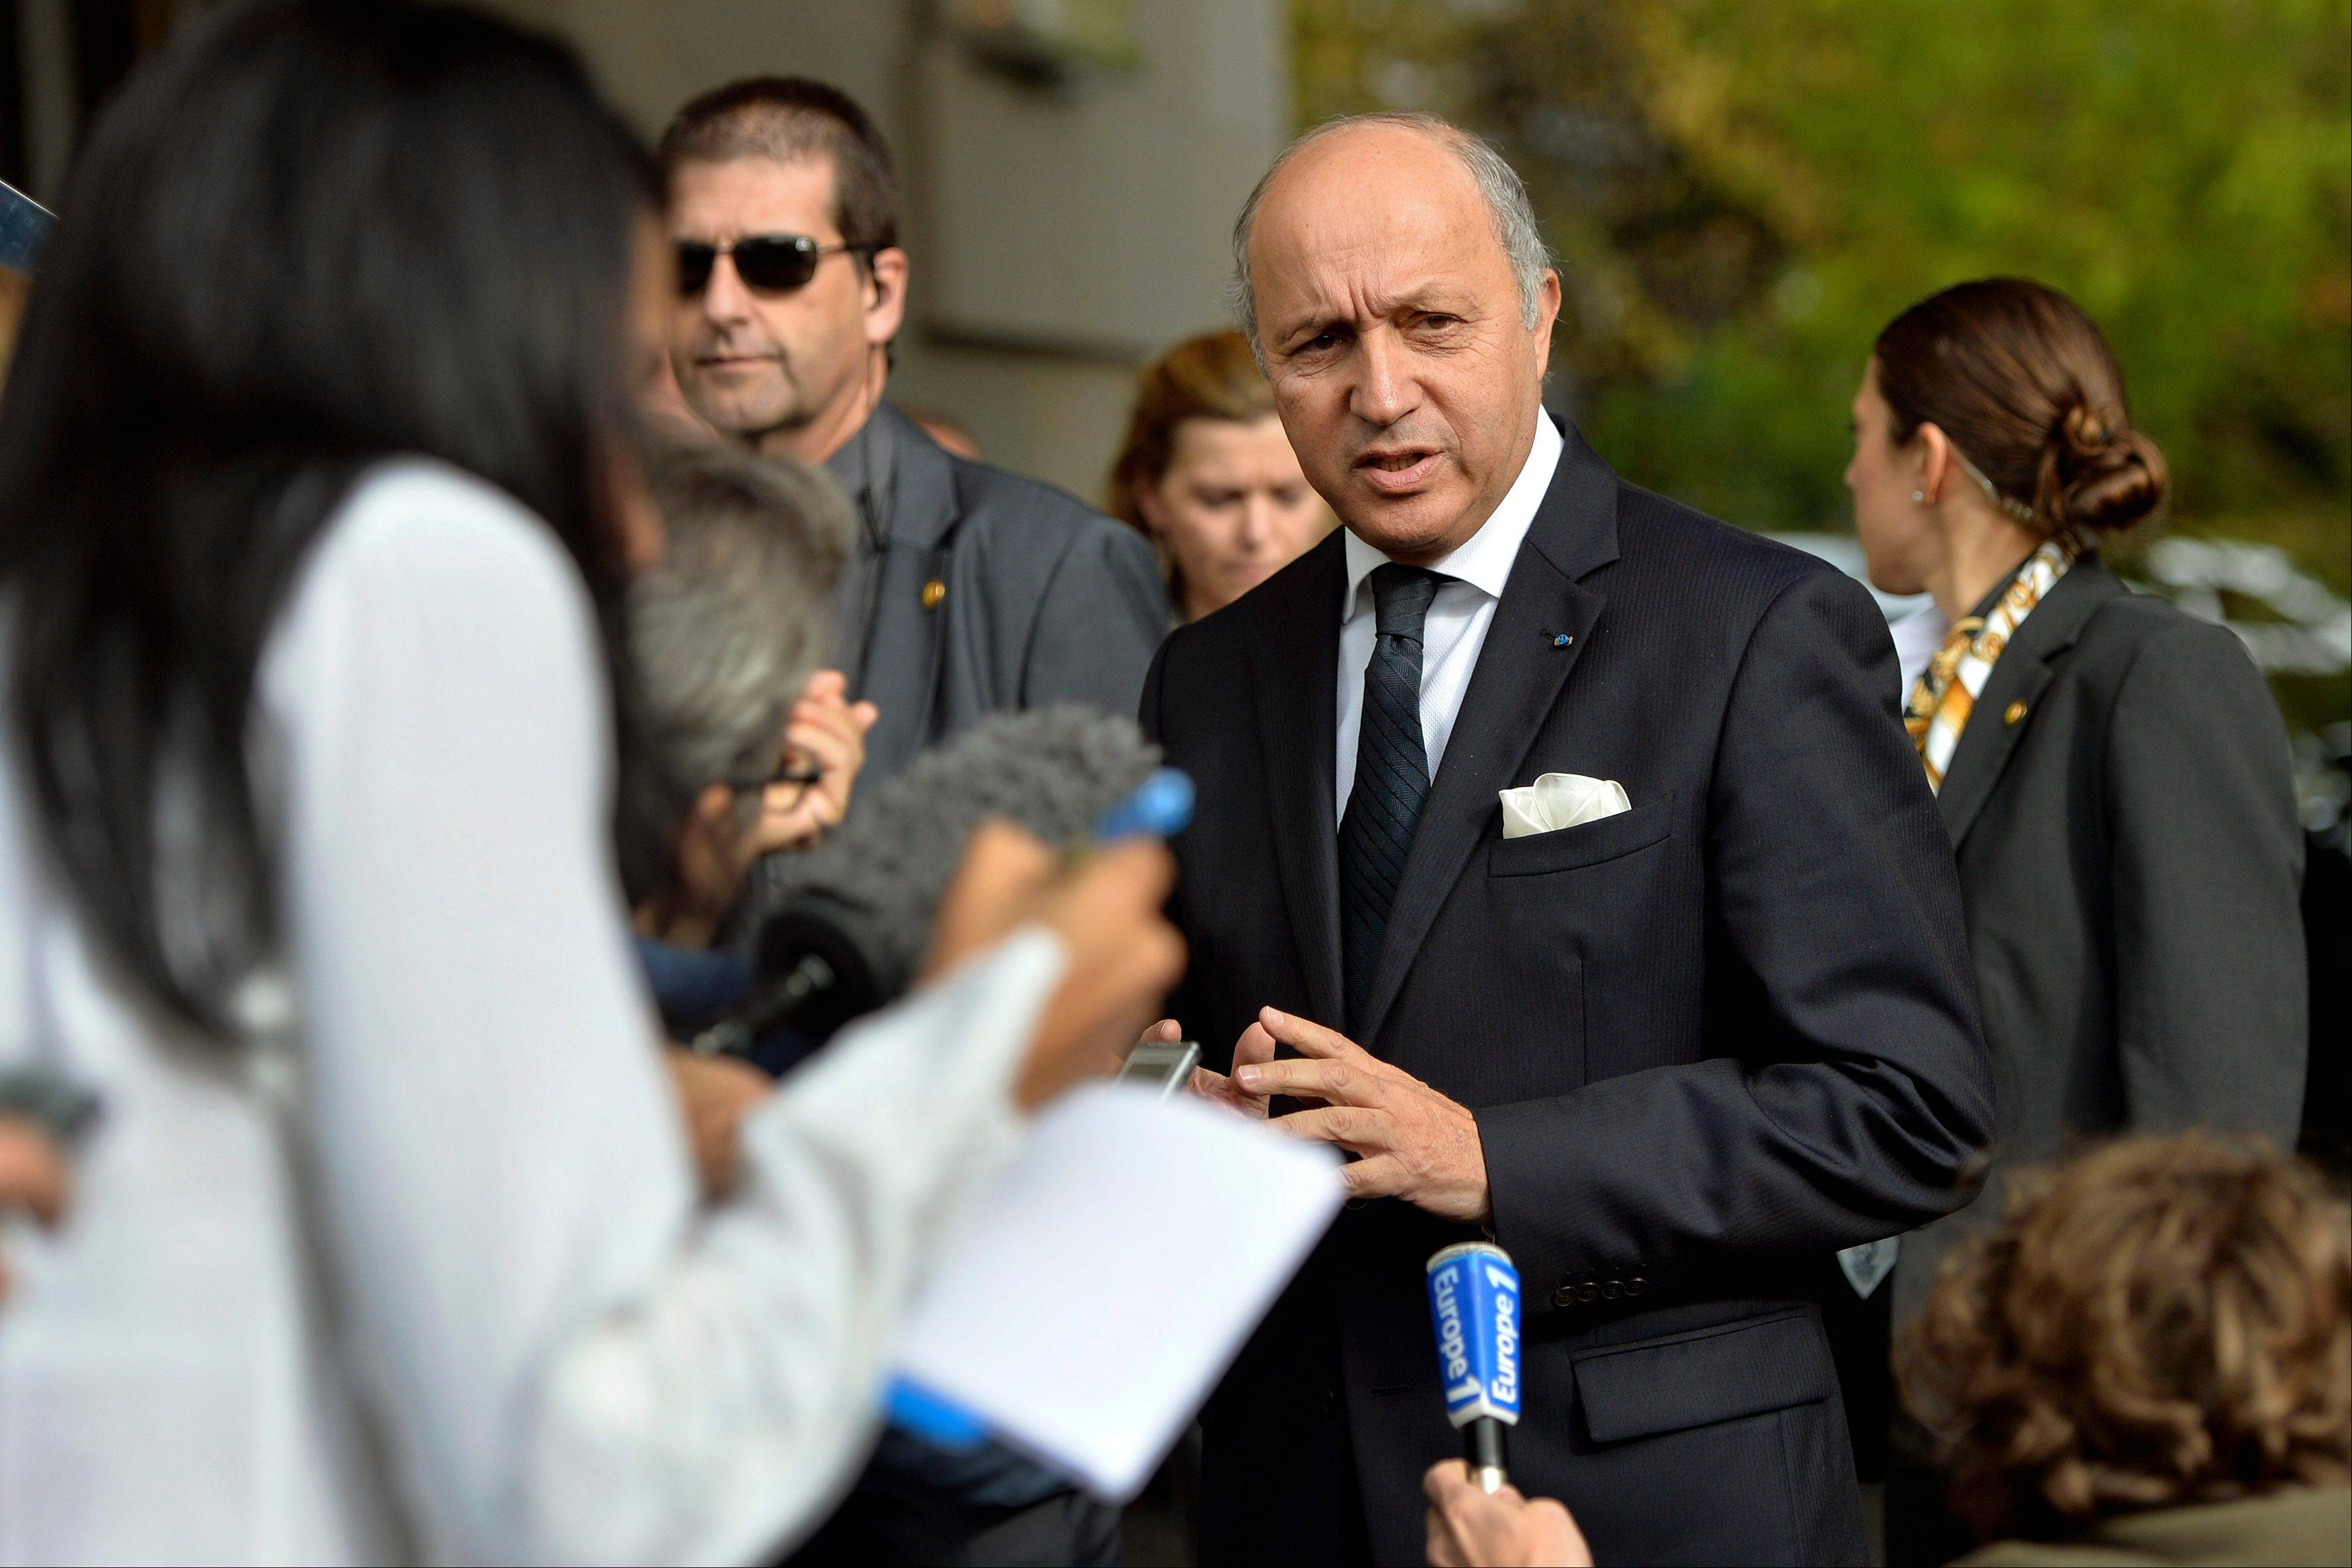 French foreign minister Laurent Fabius, center, arrives Friday for the second day of closed-door nuclear talks at the United Nations offices in Geneva, Switzerland. Four world powers are dispatching their top diplomats to Geneva on Friday to add their weight to negotiations aimed at putting initial limits on Iran�s ability to make atomic weapons. French, British and German foreign ministers are joining U.S. secretary of state John Kerry in Geneva, who will be coming �to help narrow differences in negotiations,� according to a U.S. official who spoke on condition of anonymity because he was not authorized to release the information.